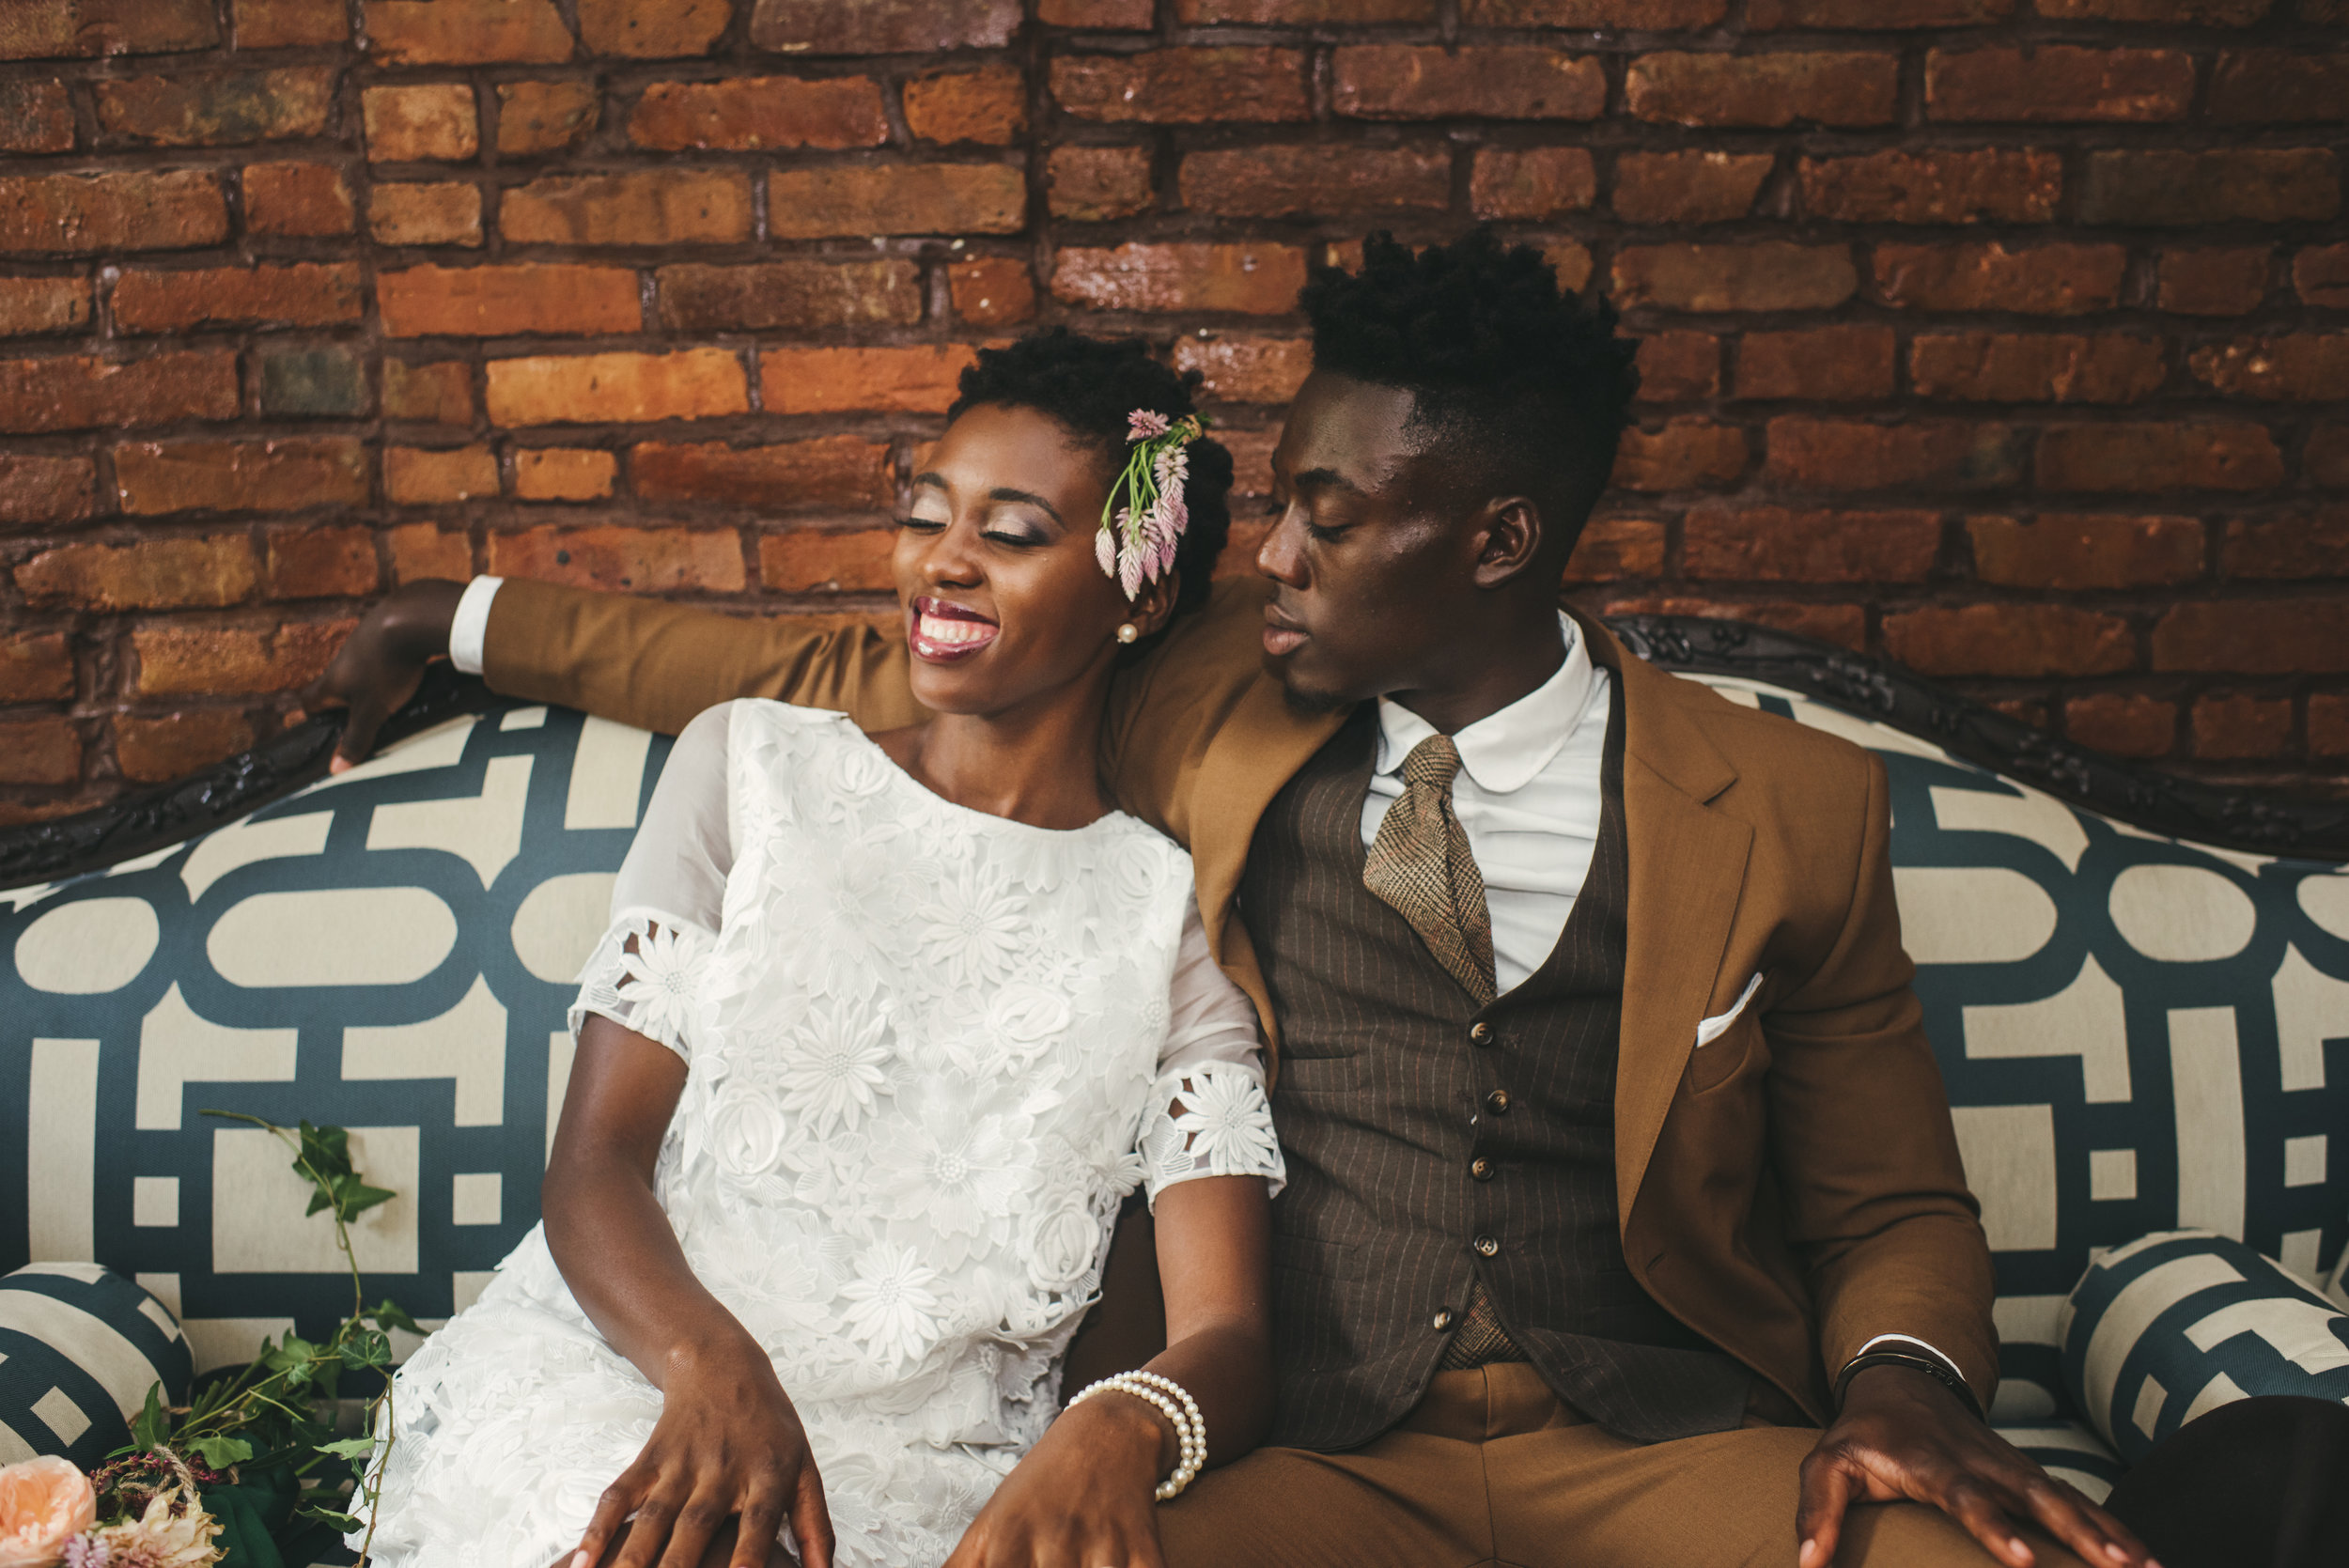 BROOKLYN BRIDE - INTIMATE WEDDING PHOTOGRAPHER - TWOTWENTY by CHI-CHI AGBIM-77.jpg